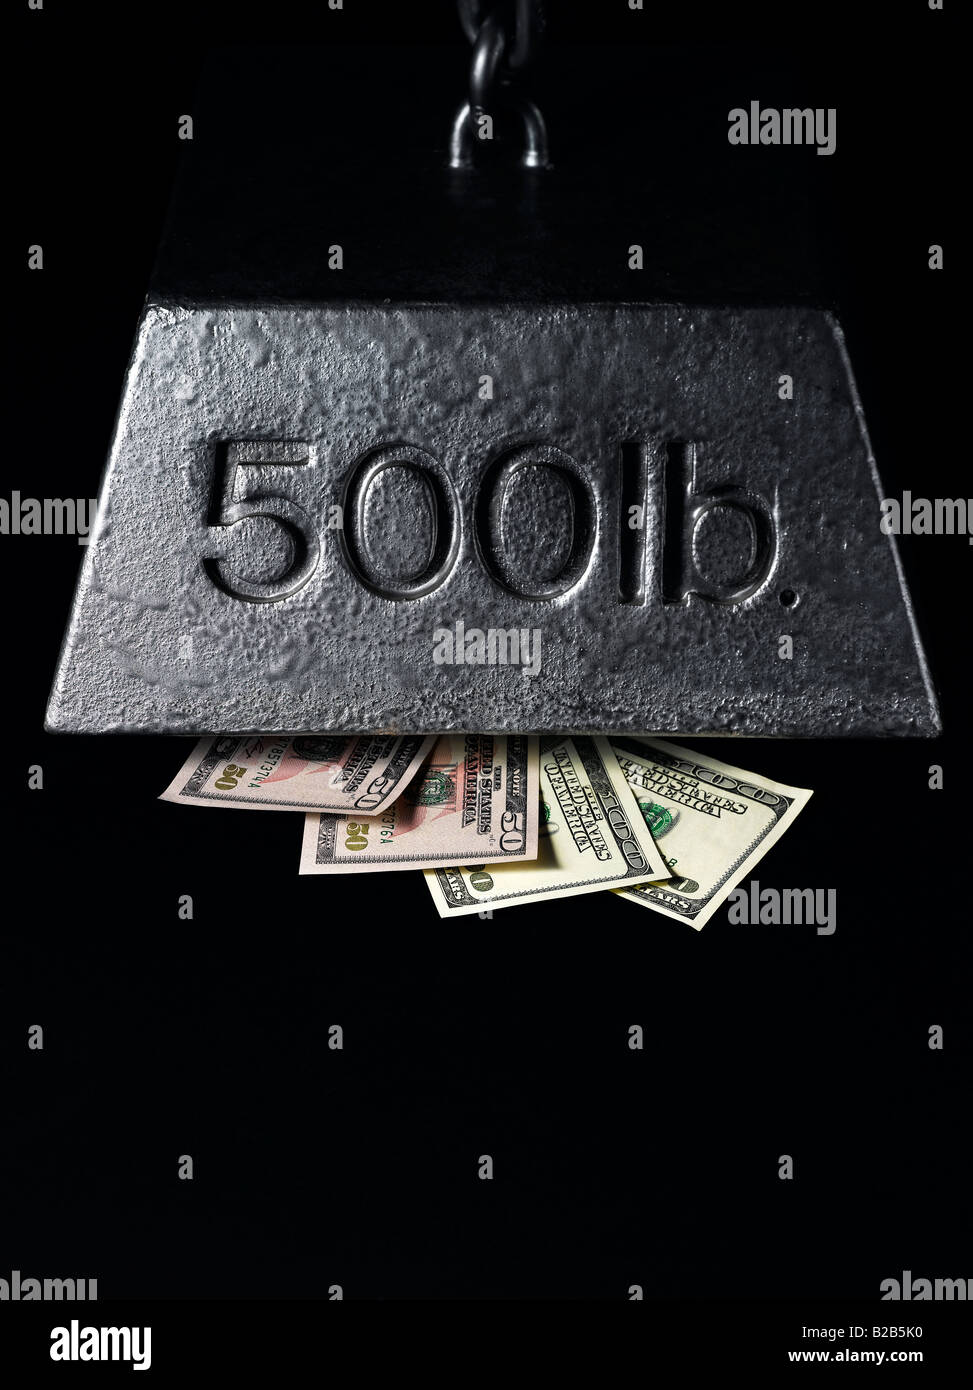 money pressured and squeezed under financial weight Stock Photo